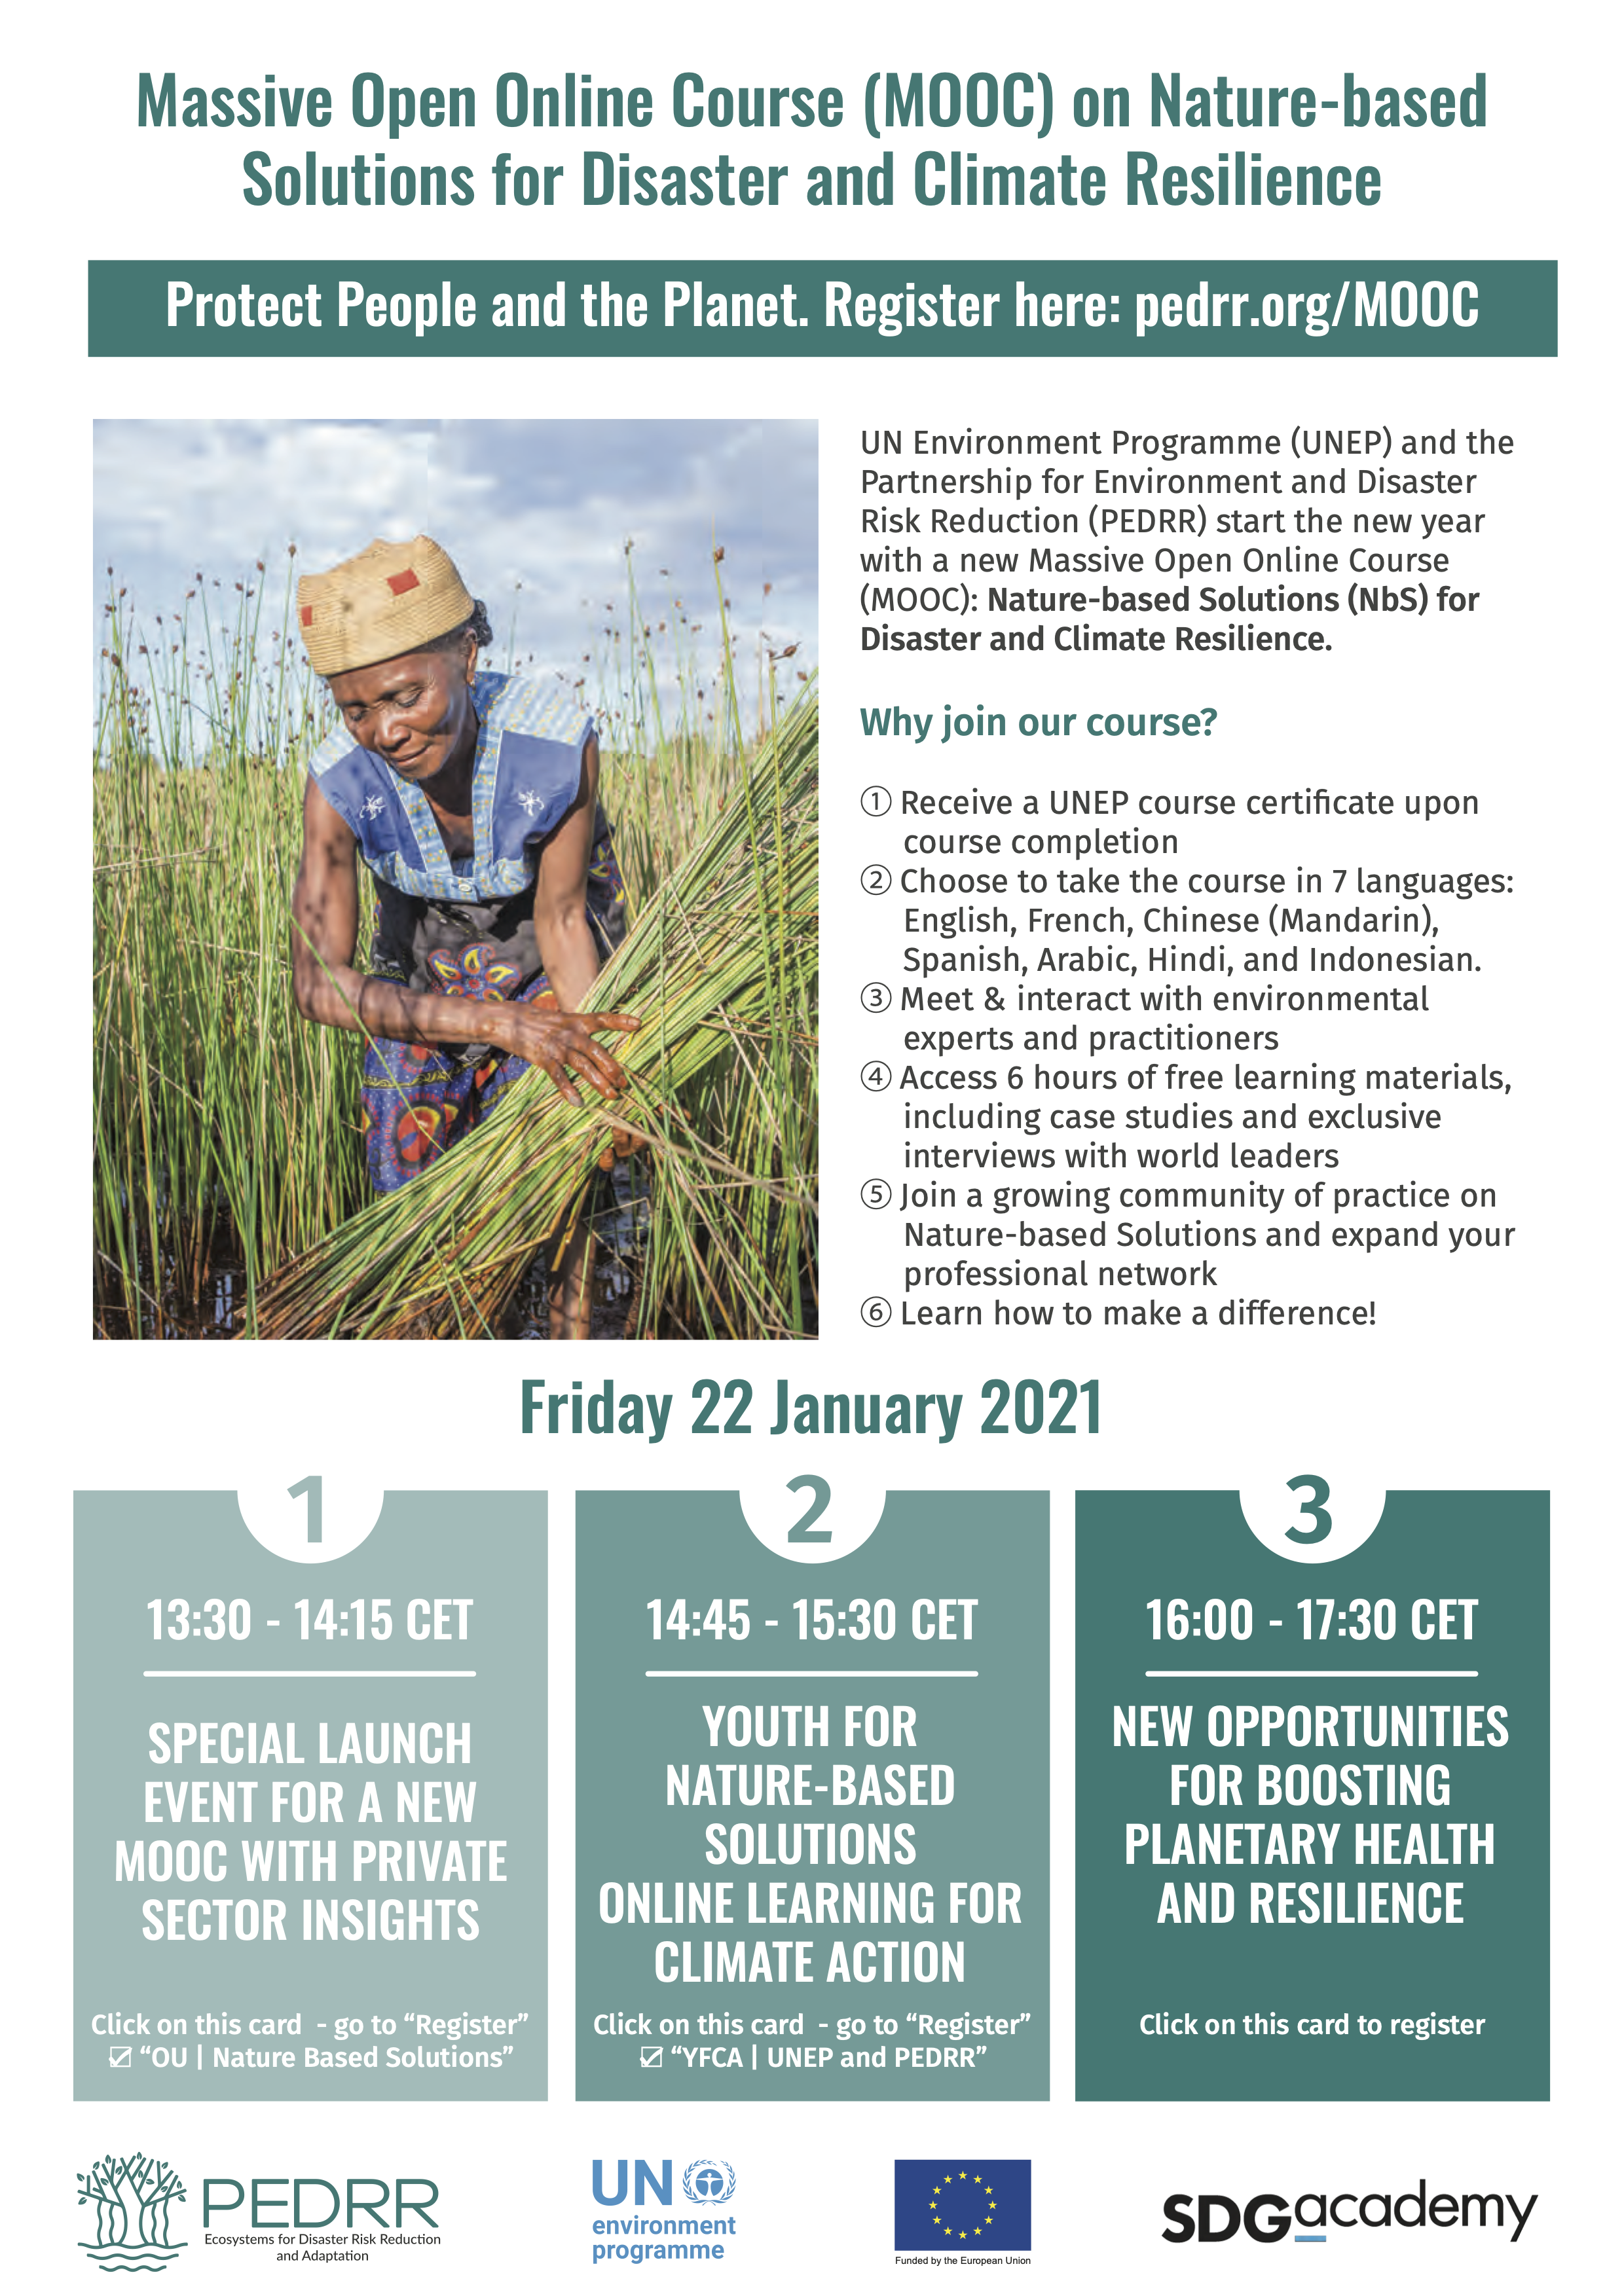 Launch of a new MOOC on Nature-based solutions for disaster and climate resilience on Friday 22 January